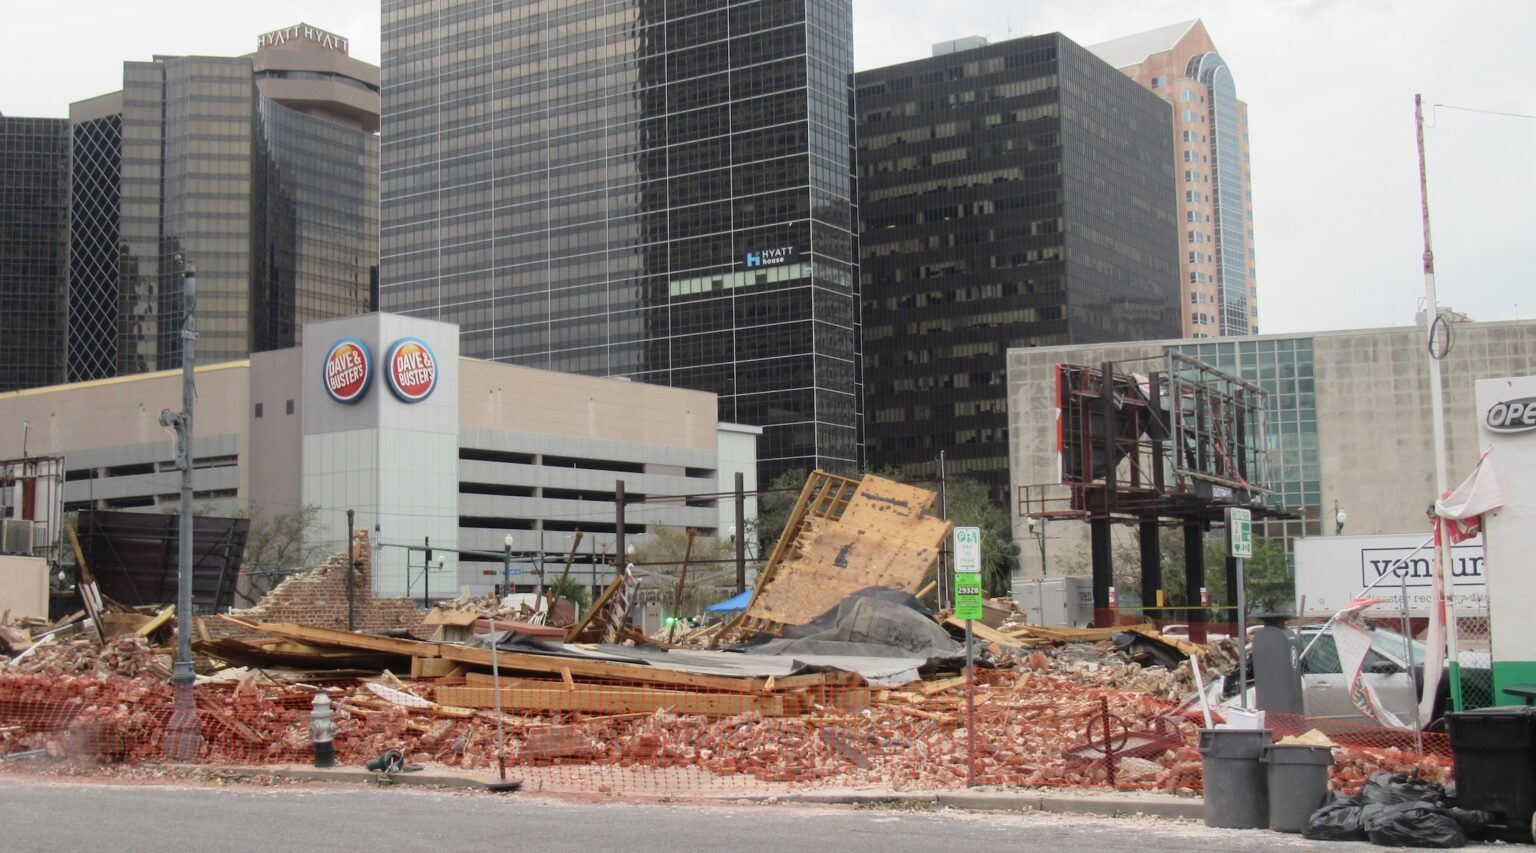 A view of the destroyed Karnofsky family building where Louis Armstrong was a regular guest in New Orleans, Louisiana on Aug. 31, 2021. (Photo/Crescent City Jewish News-Alan Smason)